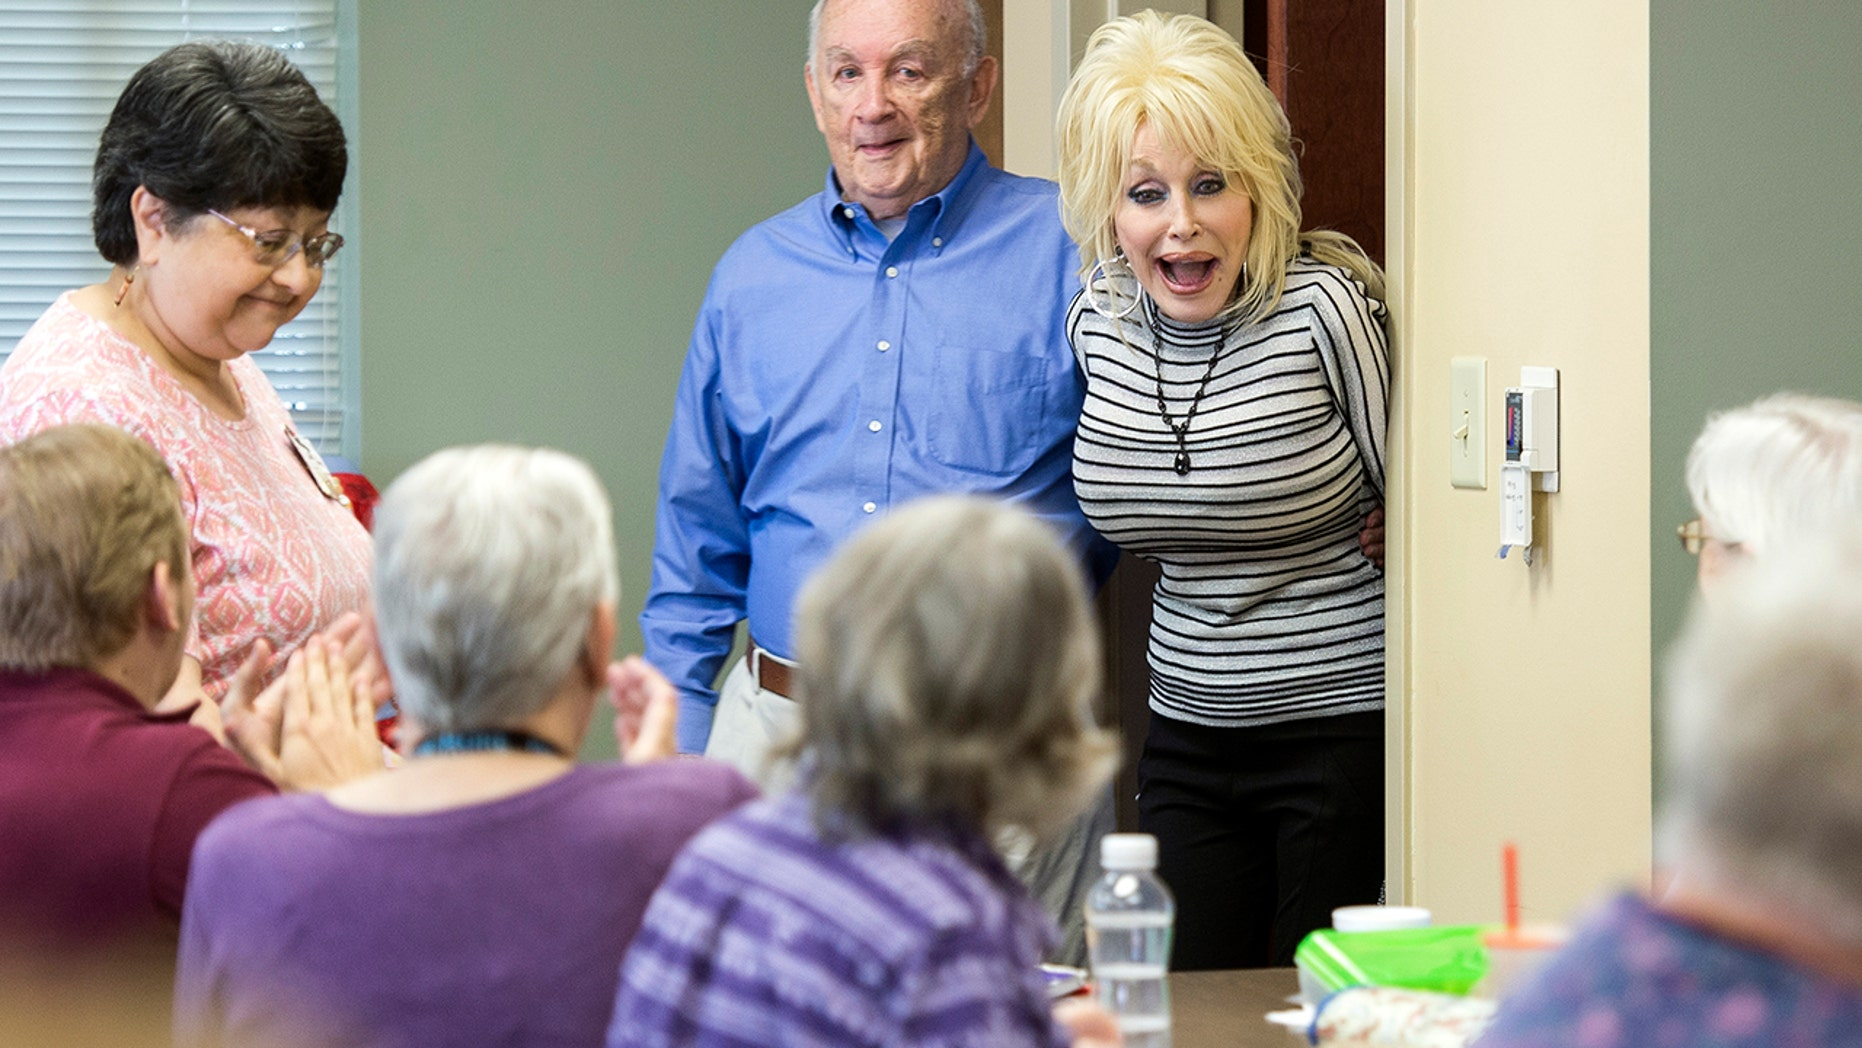 Country music superstar Dolly Parton, back right, surprises a quilting class at the renamed My People Senior Activity Center in Sevierville, Tenn., Monday, May 7, 2018. Parton came for a dedication ceremony Monday to rename the facility in honor of her parents, Robert and Avie Lee Parton.